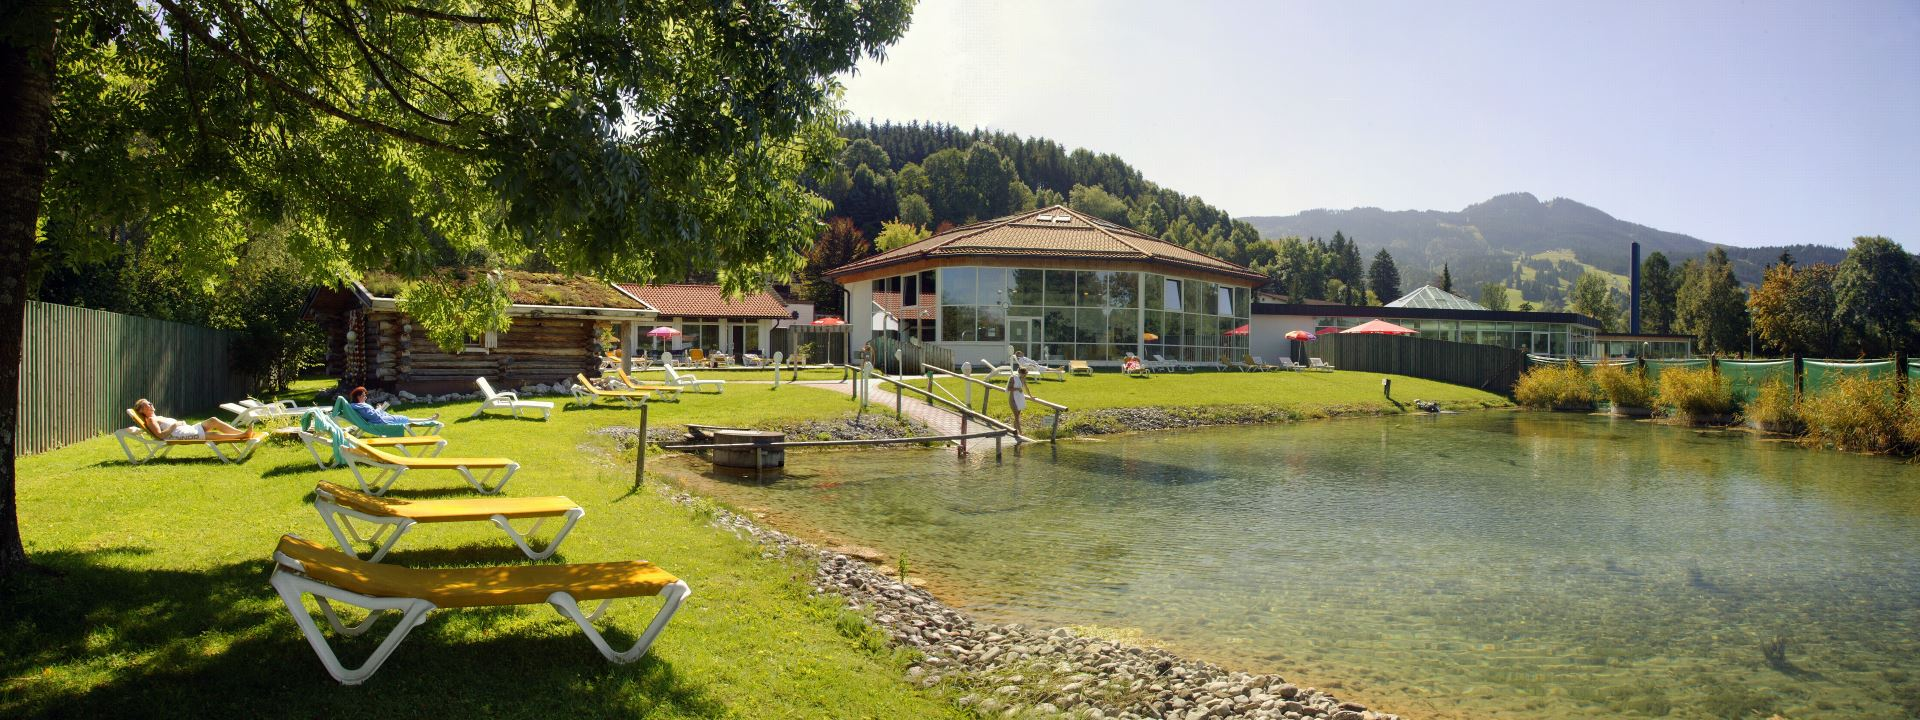 Alpspitz-Bade-Center in Nesselwang im Allgäu